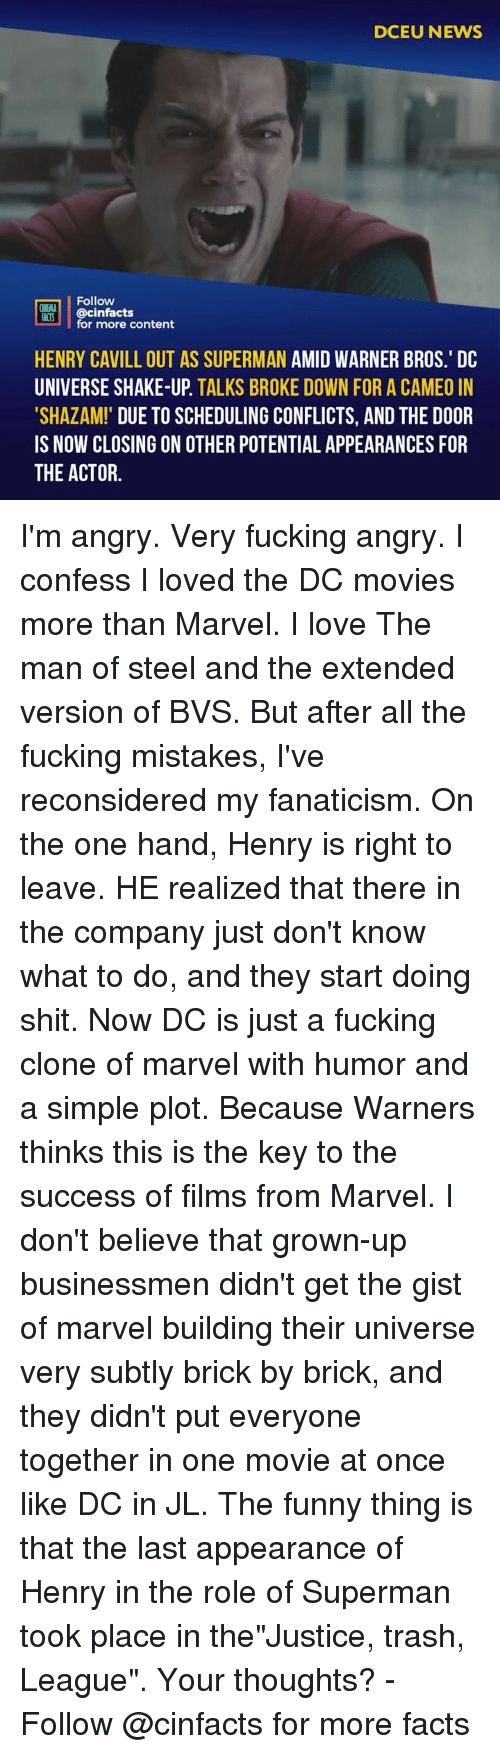 """Facts, Fucking, and Funny: DCEU NEWS  Follow  ONEMA  ACIS @cinfacts  for more content  HENRY CAVILL OUT AS SUPERMAN AMID WARNER BROS.' DC  UNIVERSE SHAKE-UP. TALKS BROKE DOWN FOR A CAMEO IN  SHAZAM! DUE TO SCHEDULING CONFLICTS, AND THE DOOR  IS NOW CLOSING ON OTHER POTENTIAL APPEARANCES FOR  THE ACTOR. I'm angry. Very fucking angry. I confess I loved the DC movies more than Marvel. I love The man of steel and the extended version of BVS. But after all the fucking mistakes, I've reconsidered my fanaticism. On the one hand, Henry is right to leave. HE realized that there in the company just don't know what to do, and they start doing shit. Now DC is just a fucking clone of marvel with humor and a simple plot. Because Warners thinks this is the key to the success of films from Marvel. I don't believe that grown-up businessmen didn't get the gist of marvel building their universe very subtly brick by brick, and they didn't put everyone together in one movie at once like DC in JL. The funny thing is that the last appearance of Henry in the role of Superman took place in the""""Justice, trash, League"""". Your thoughts? -⠀ Follow @cinfacts for more facts"""